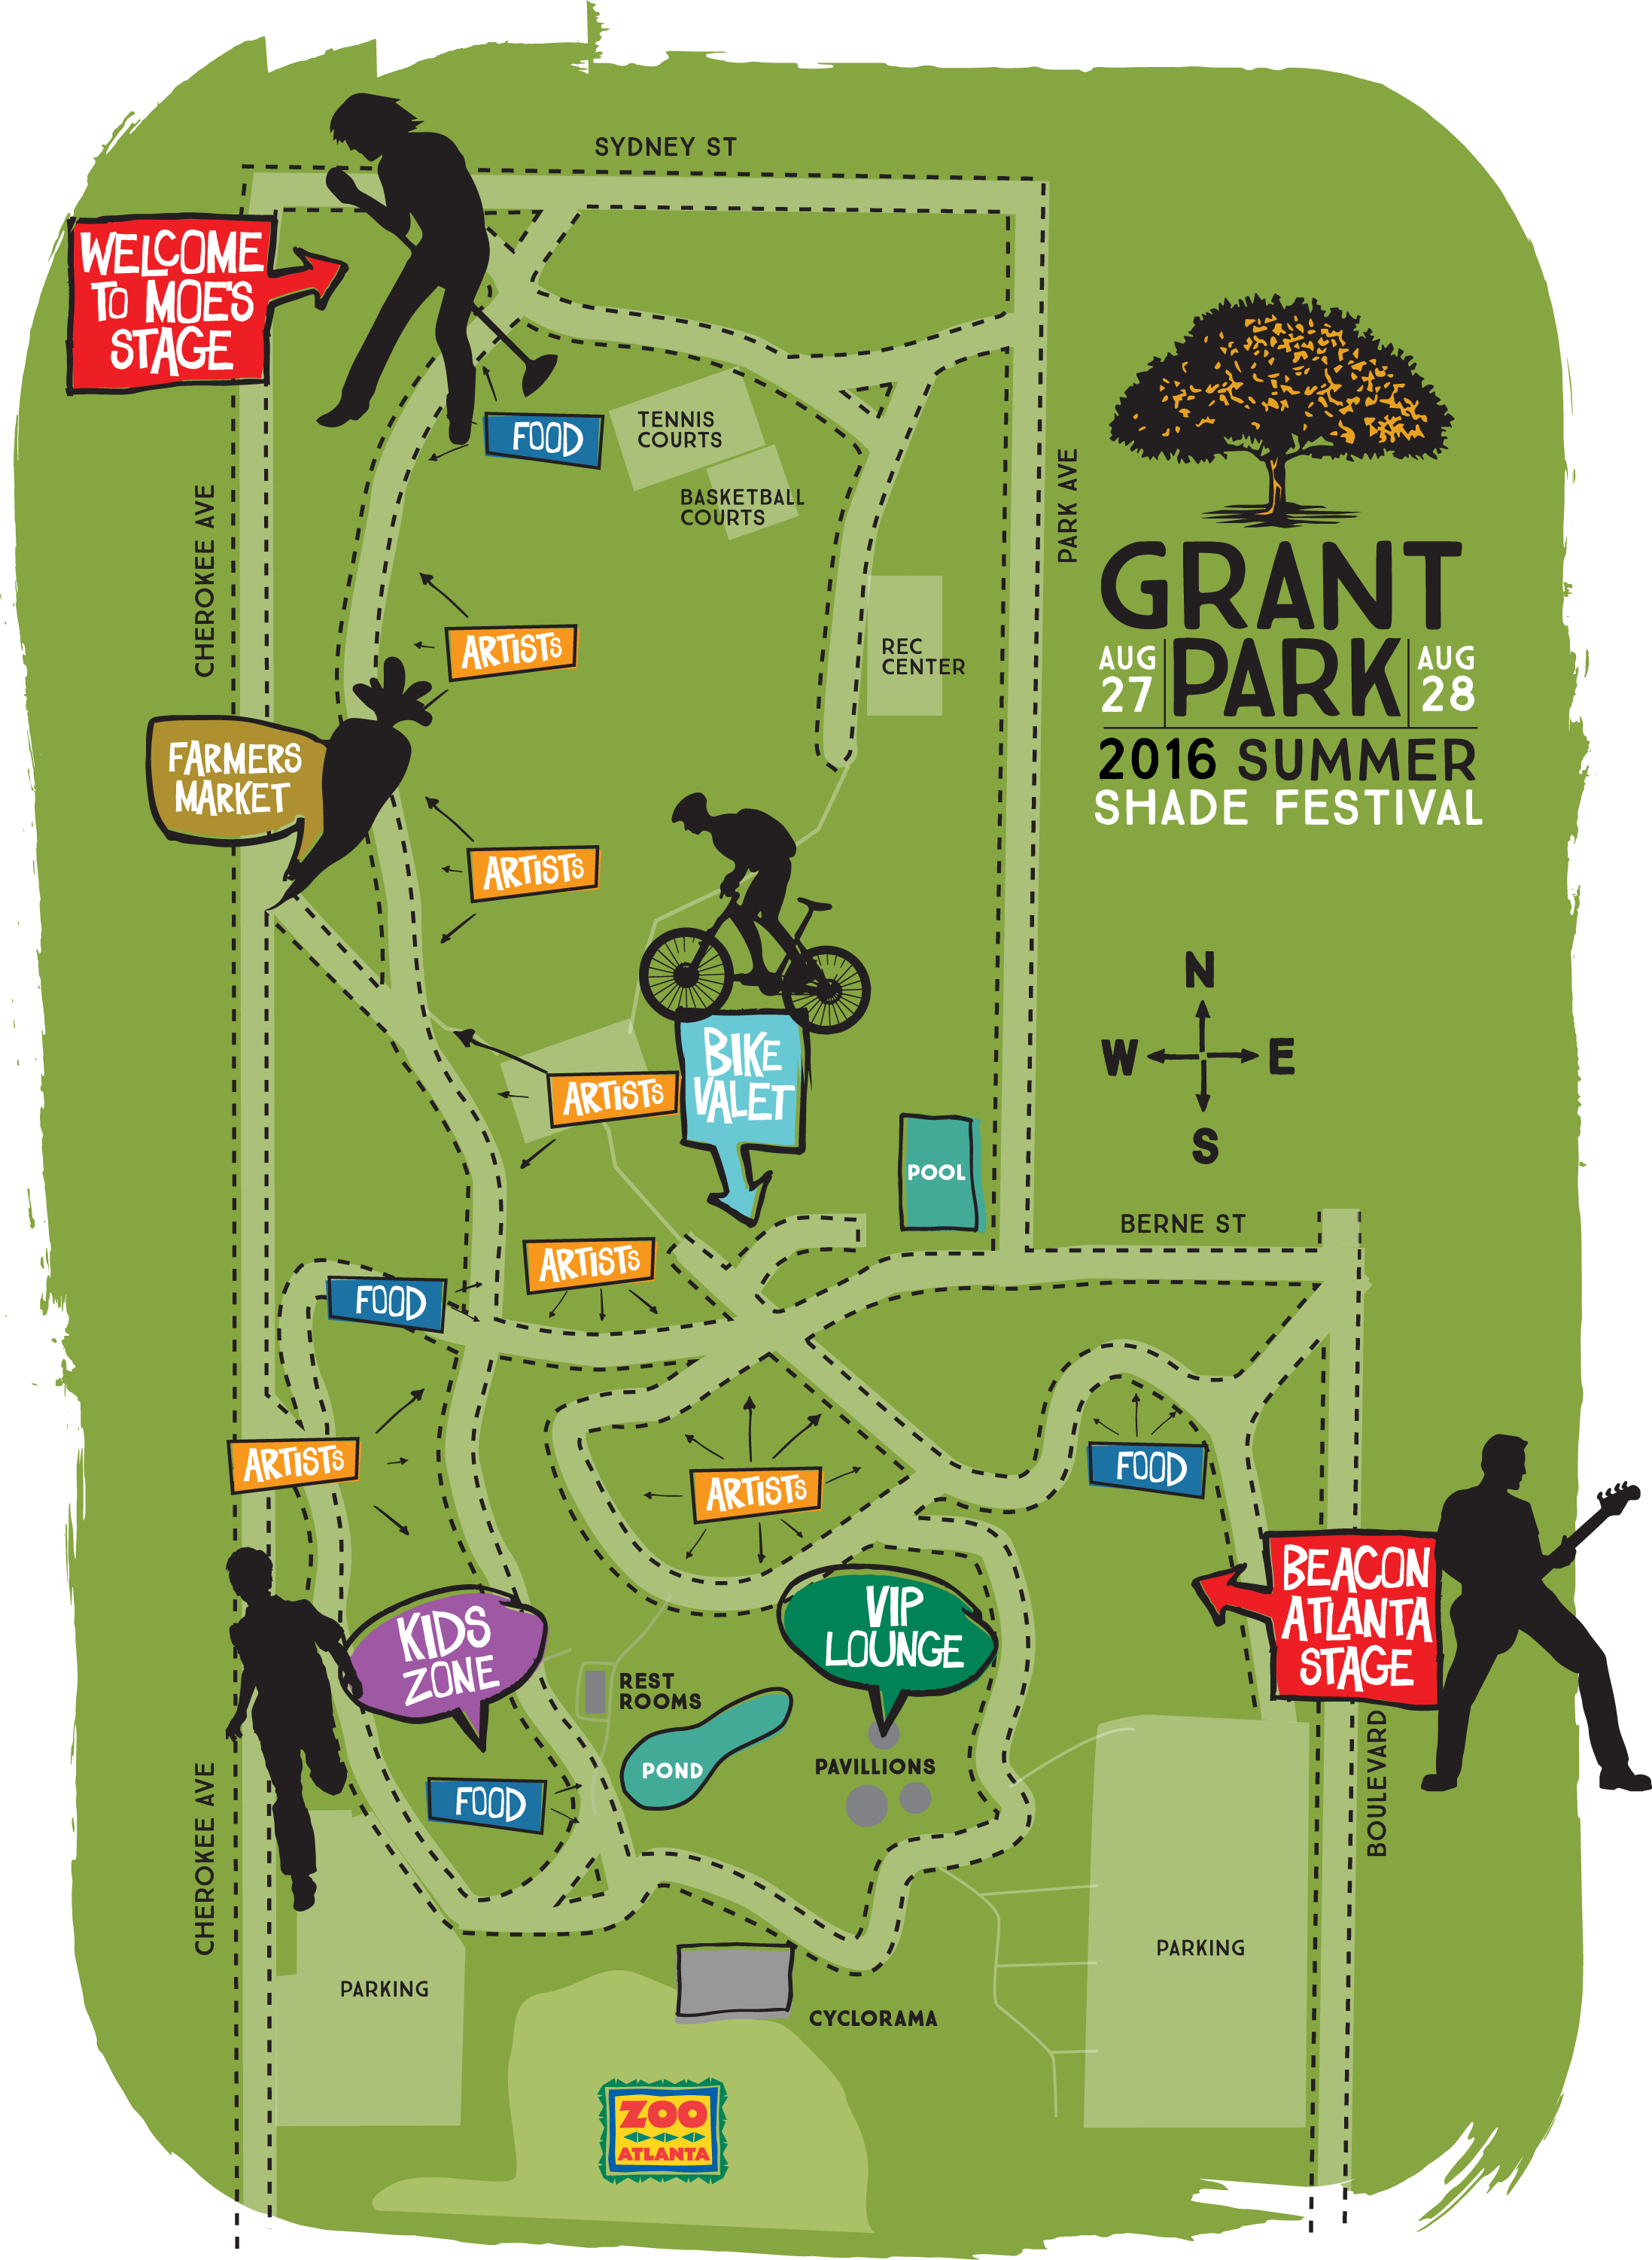 Grant Park Summer Shade Festival Is This Weekend | WABE 90 1 FM